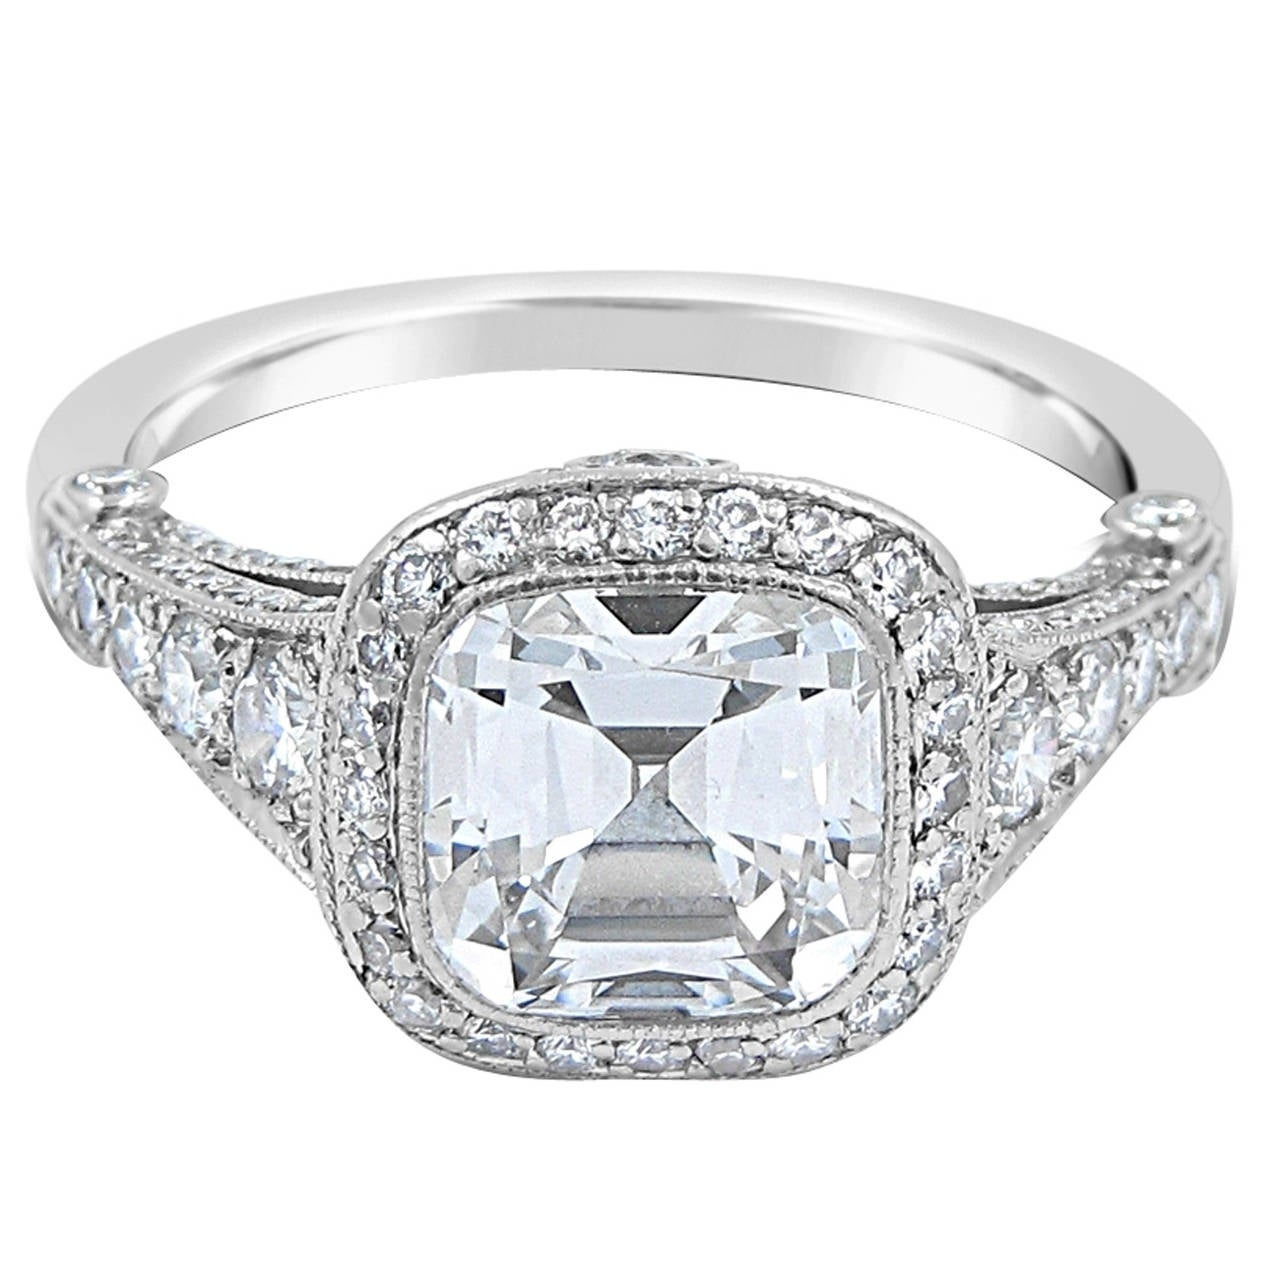 Tiffany and Co 2 51 Carat Cushion Cut Diamond Platinum Engagement Ring at 1s